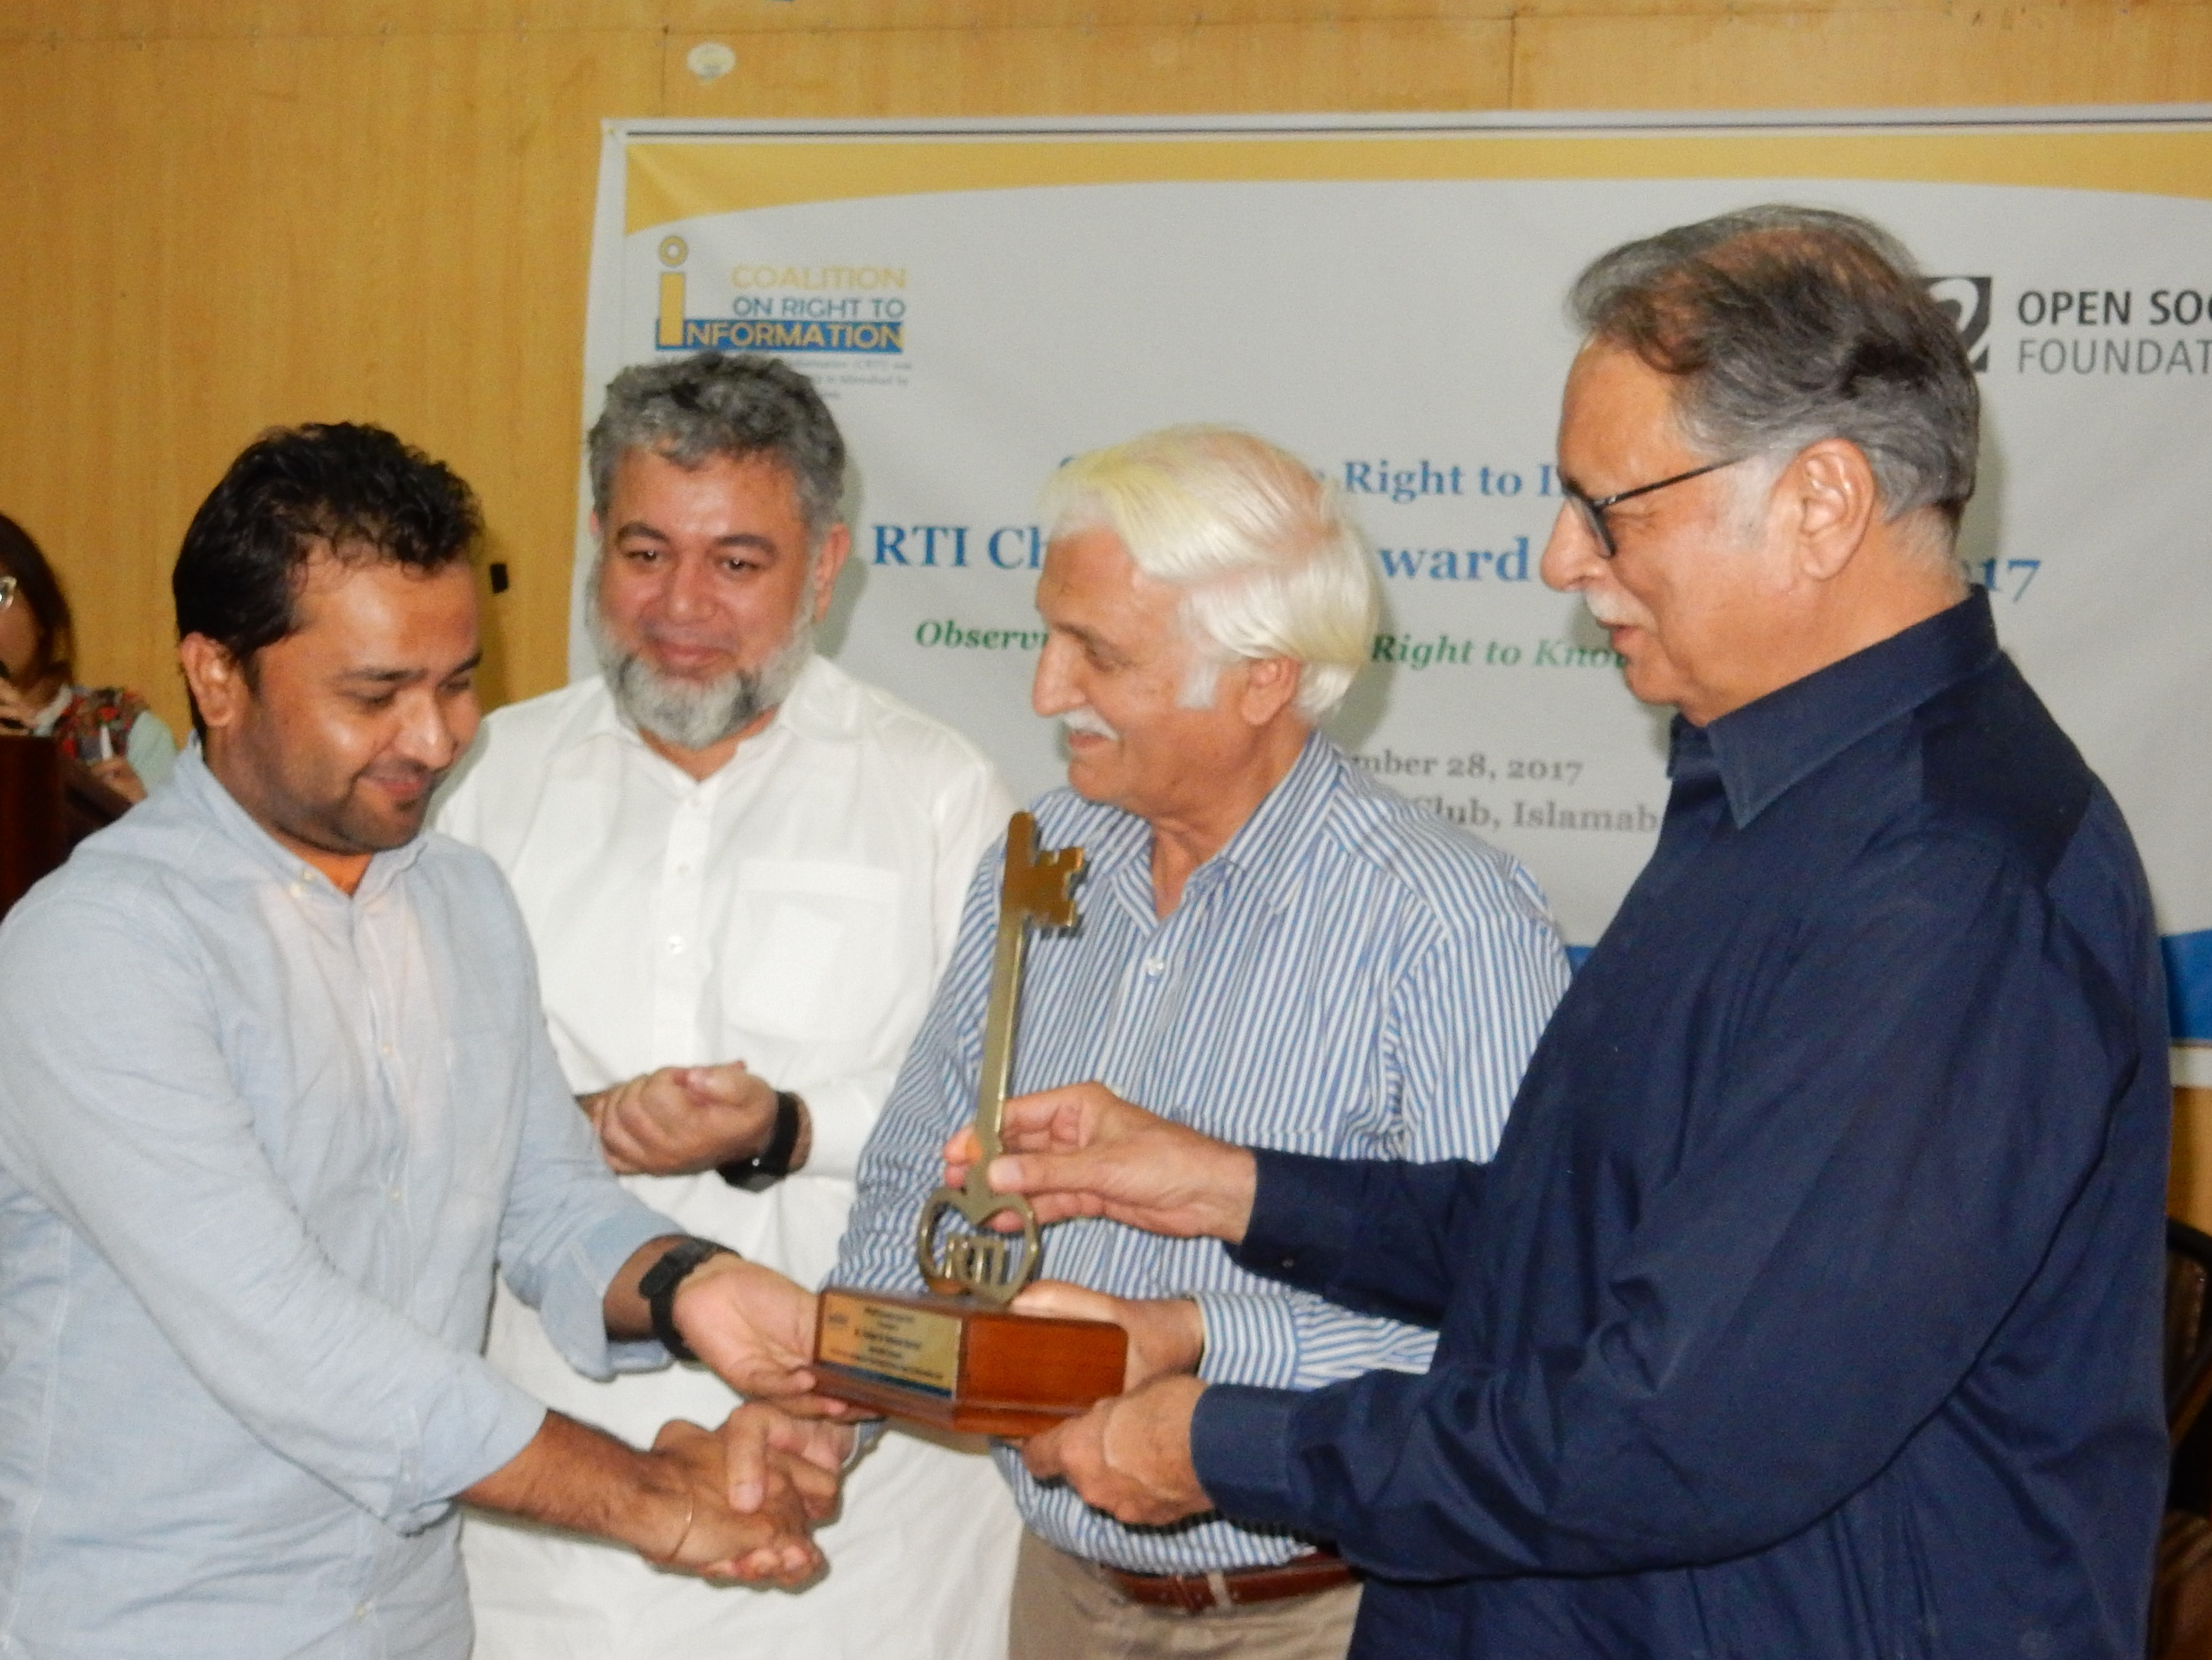 Mr. Fakhar Durrani is receiving RTI Champions Award 2017 in Journalist category